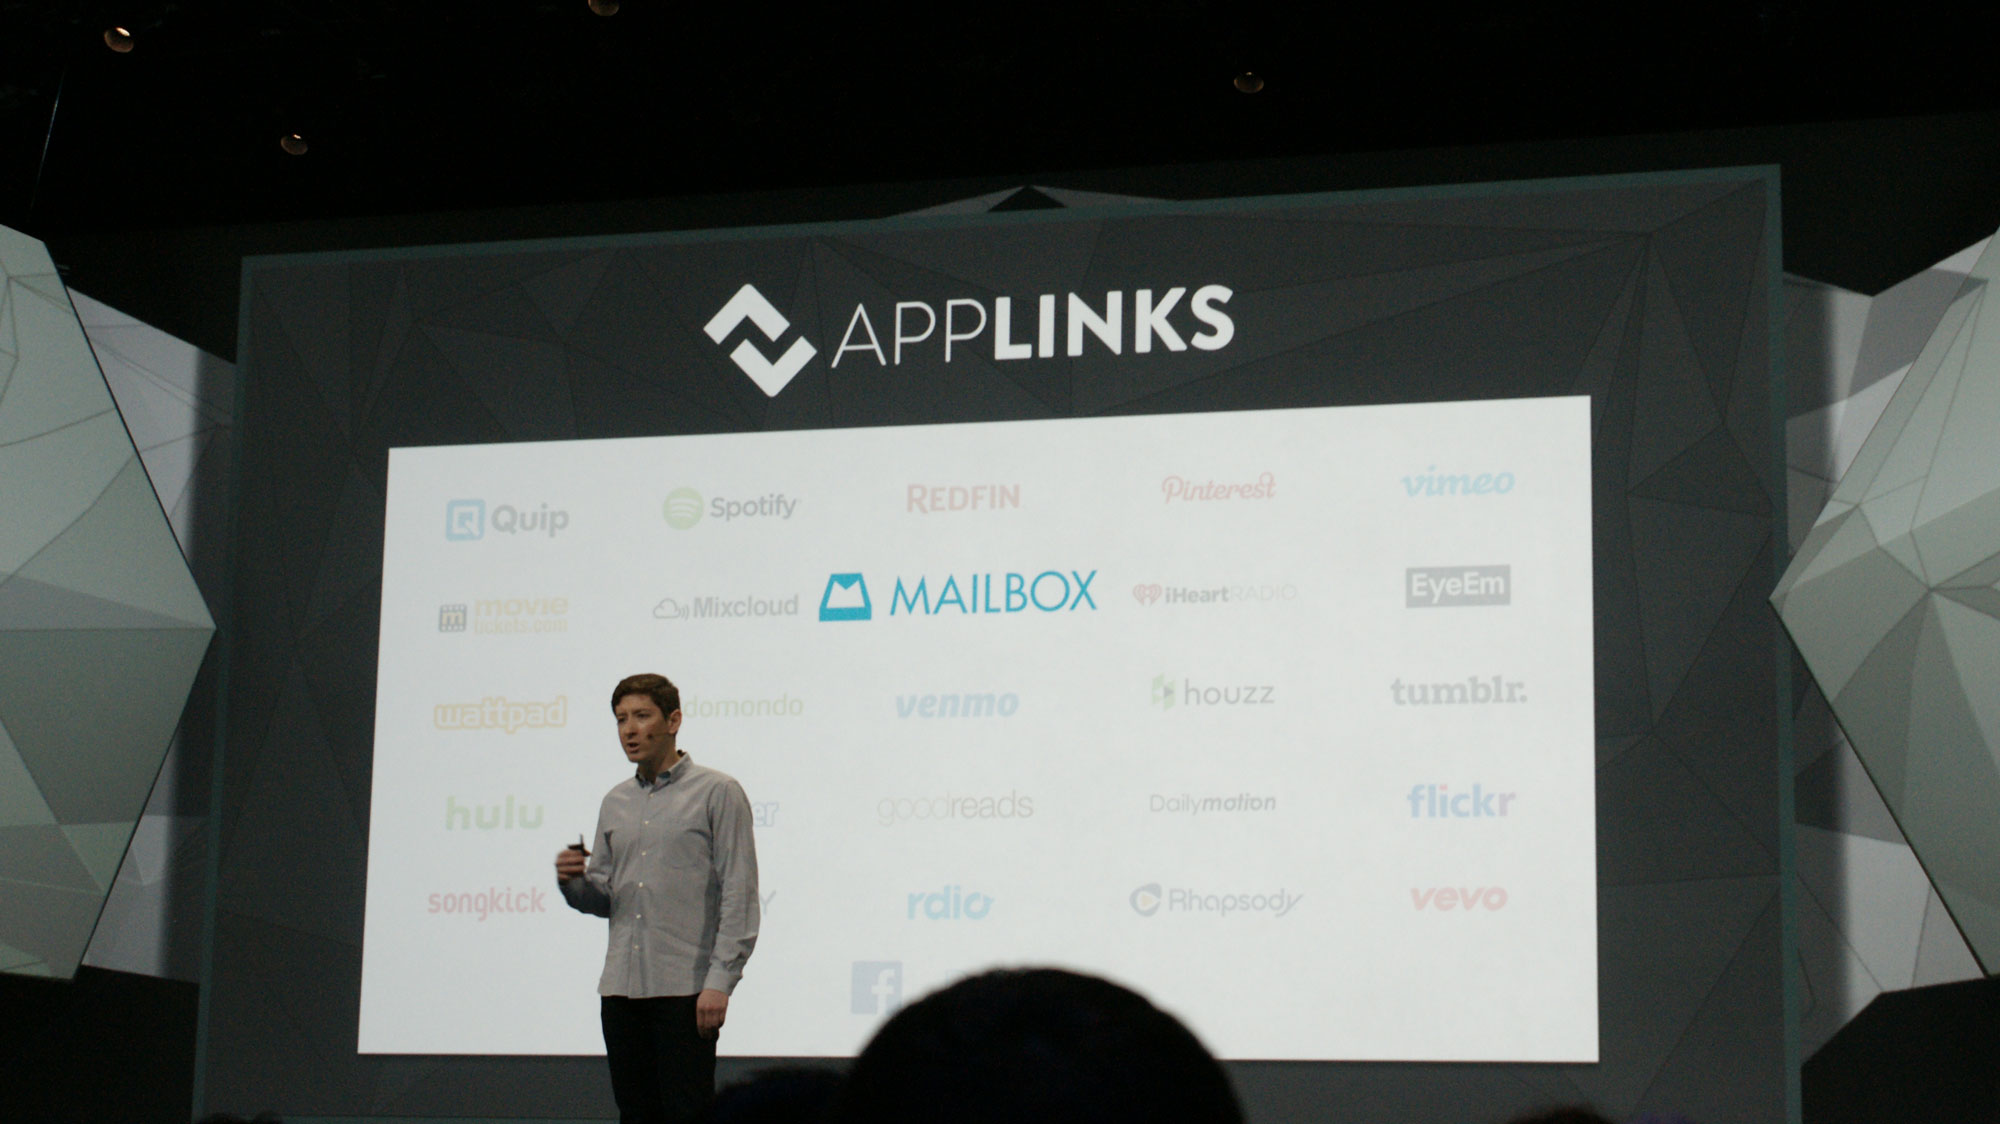 Inside App Links, Facebook's Plan to Make Mobile Apps Like the Web